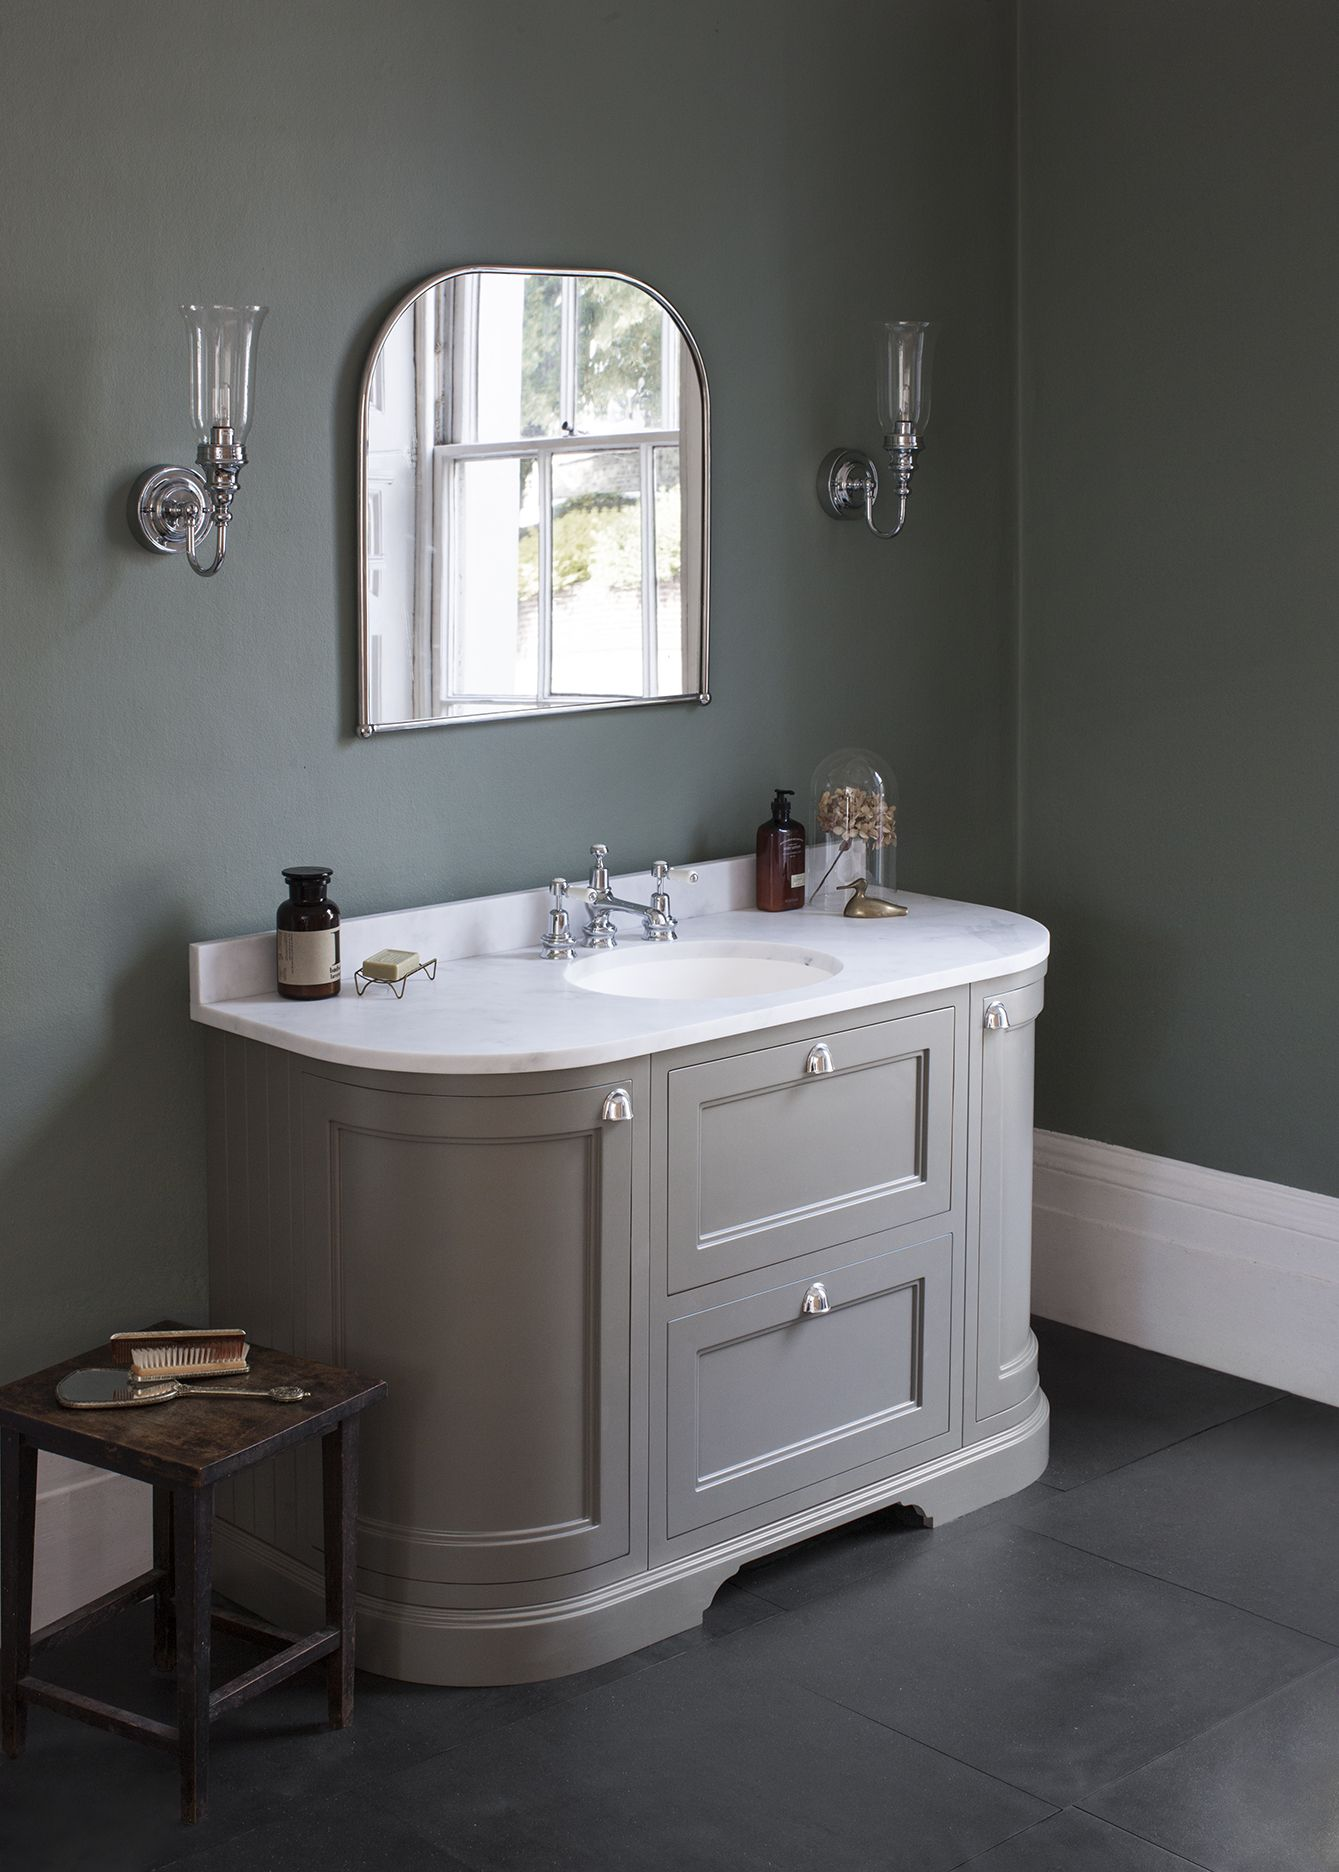 Bathroom Vanity Doors 140 ways to make any bathroom feel like an at-home spa | vanity